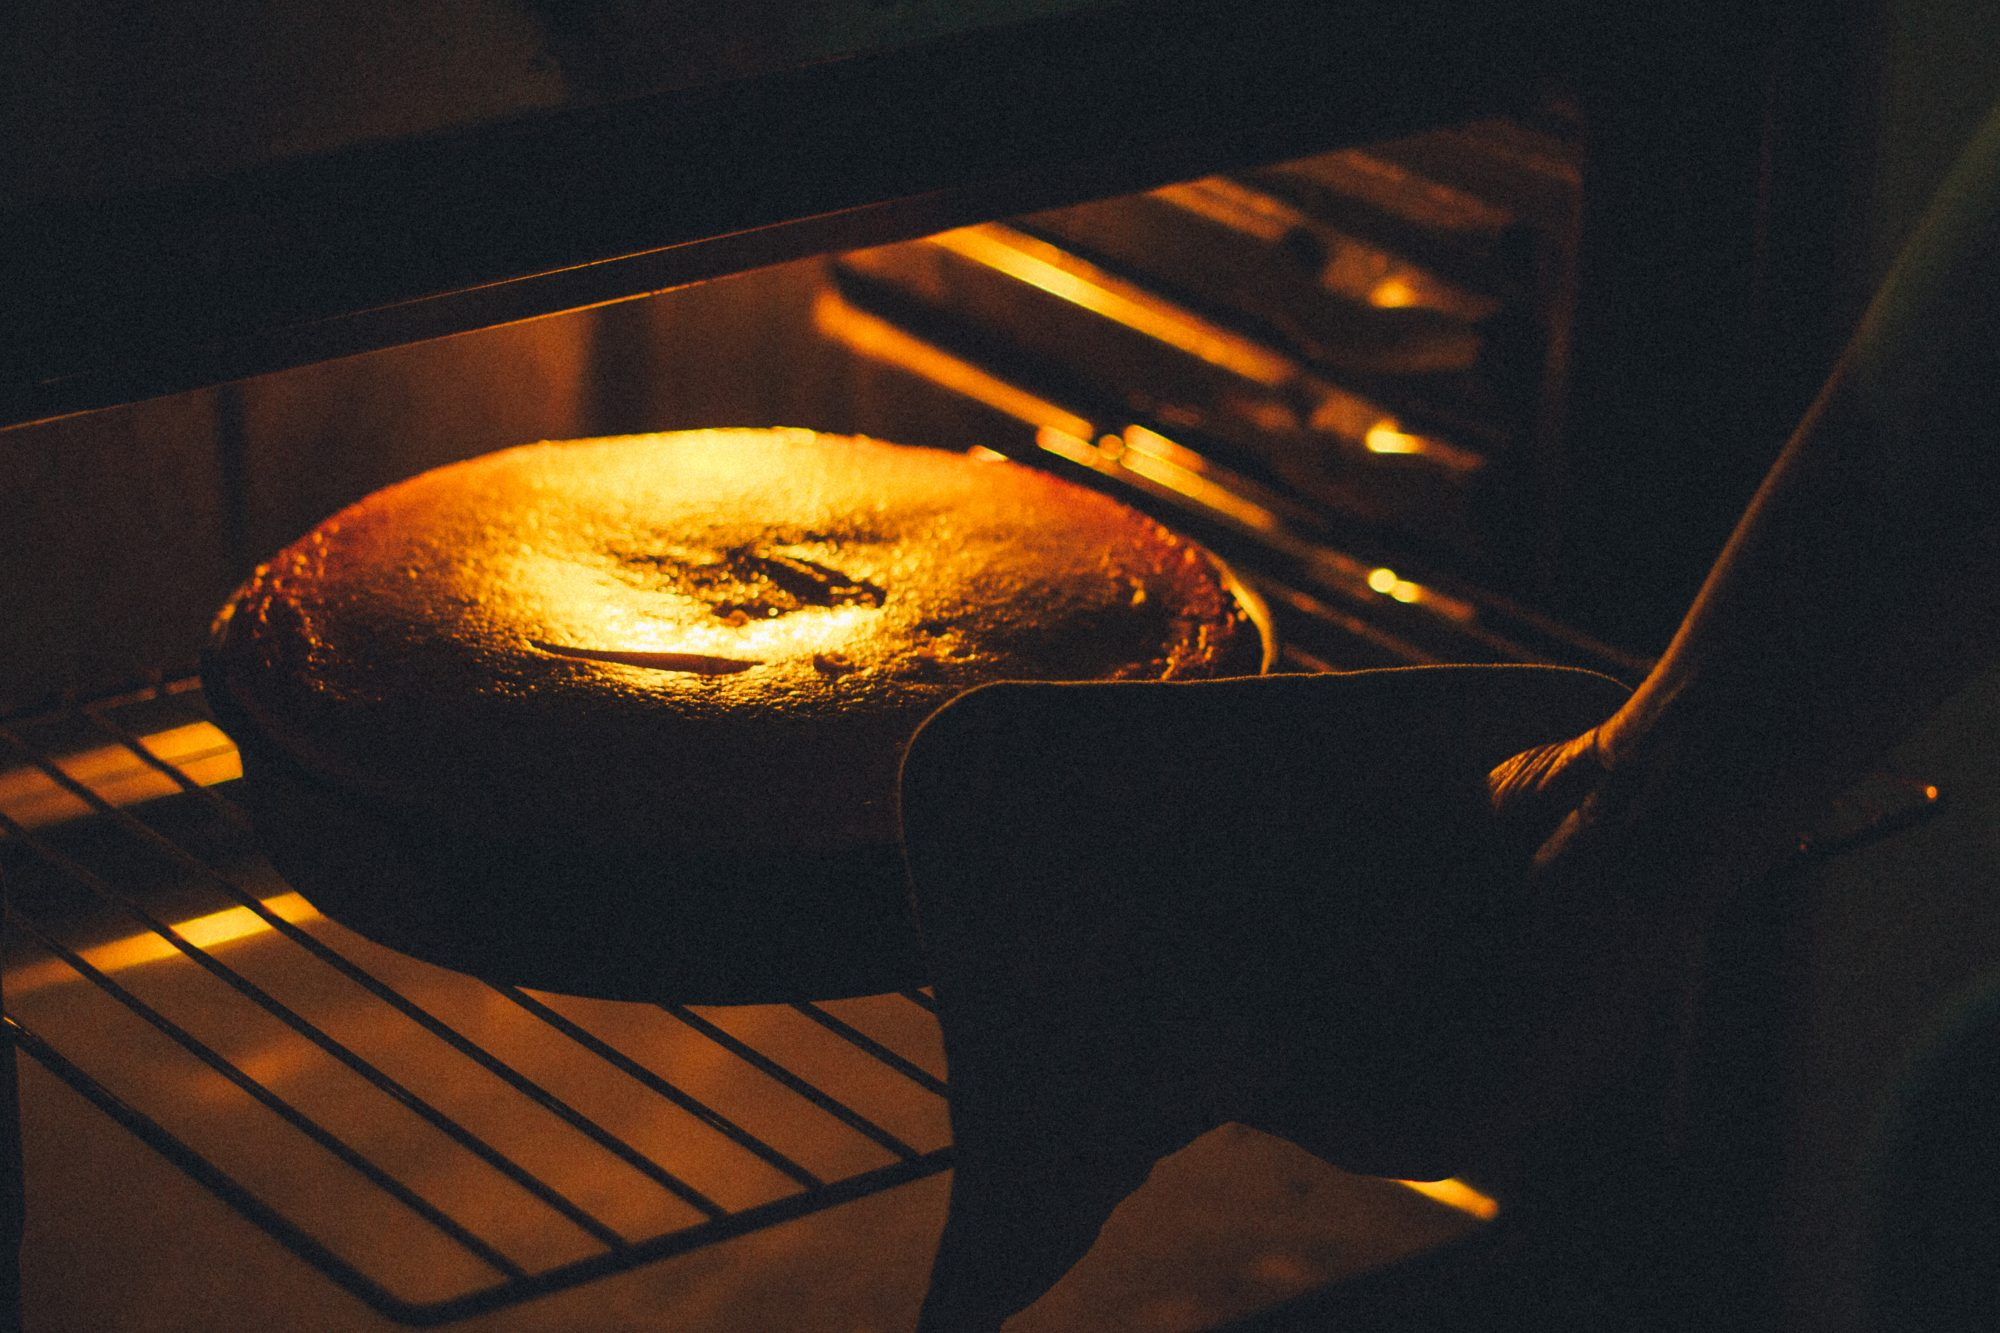 Cake in oven Getty 9/14/20